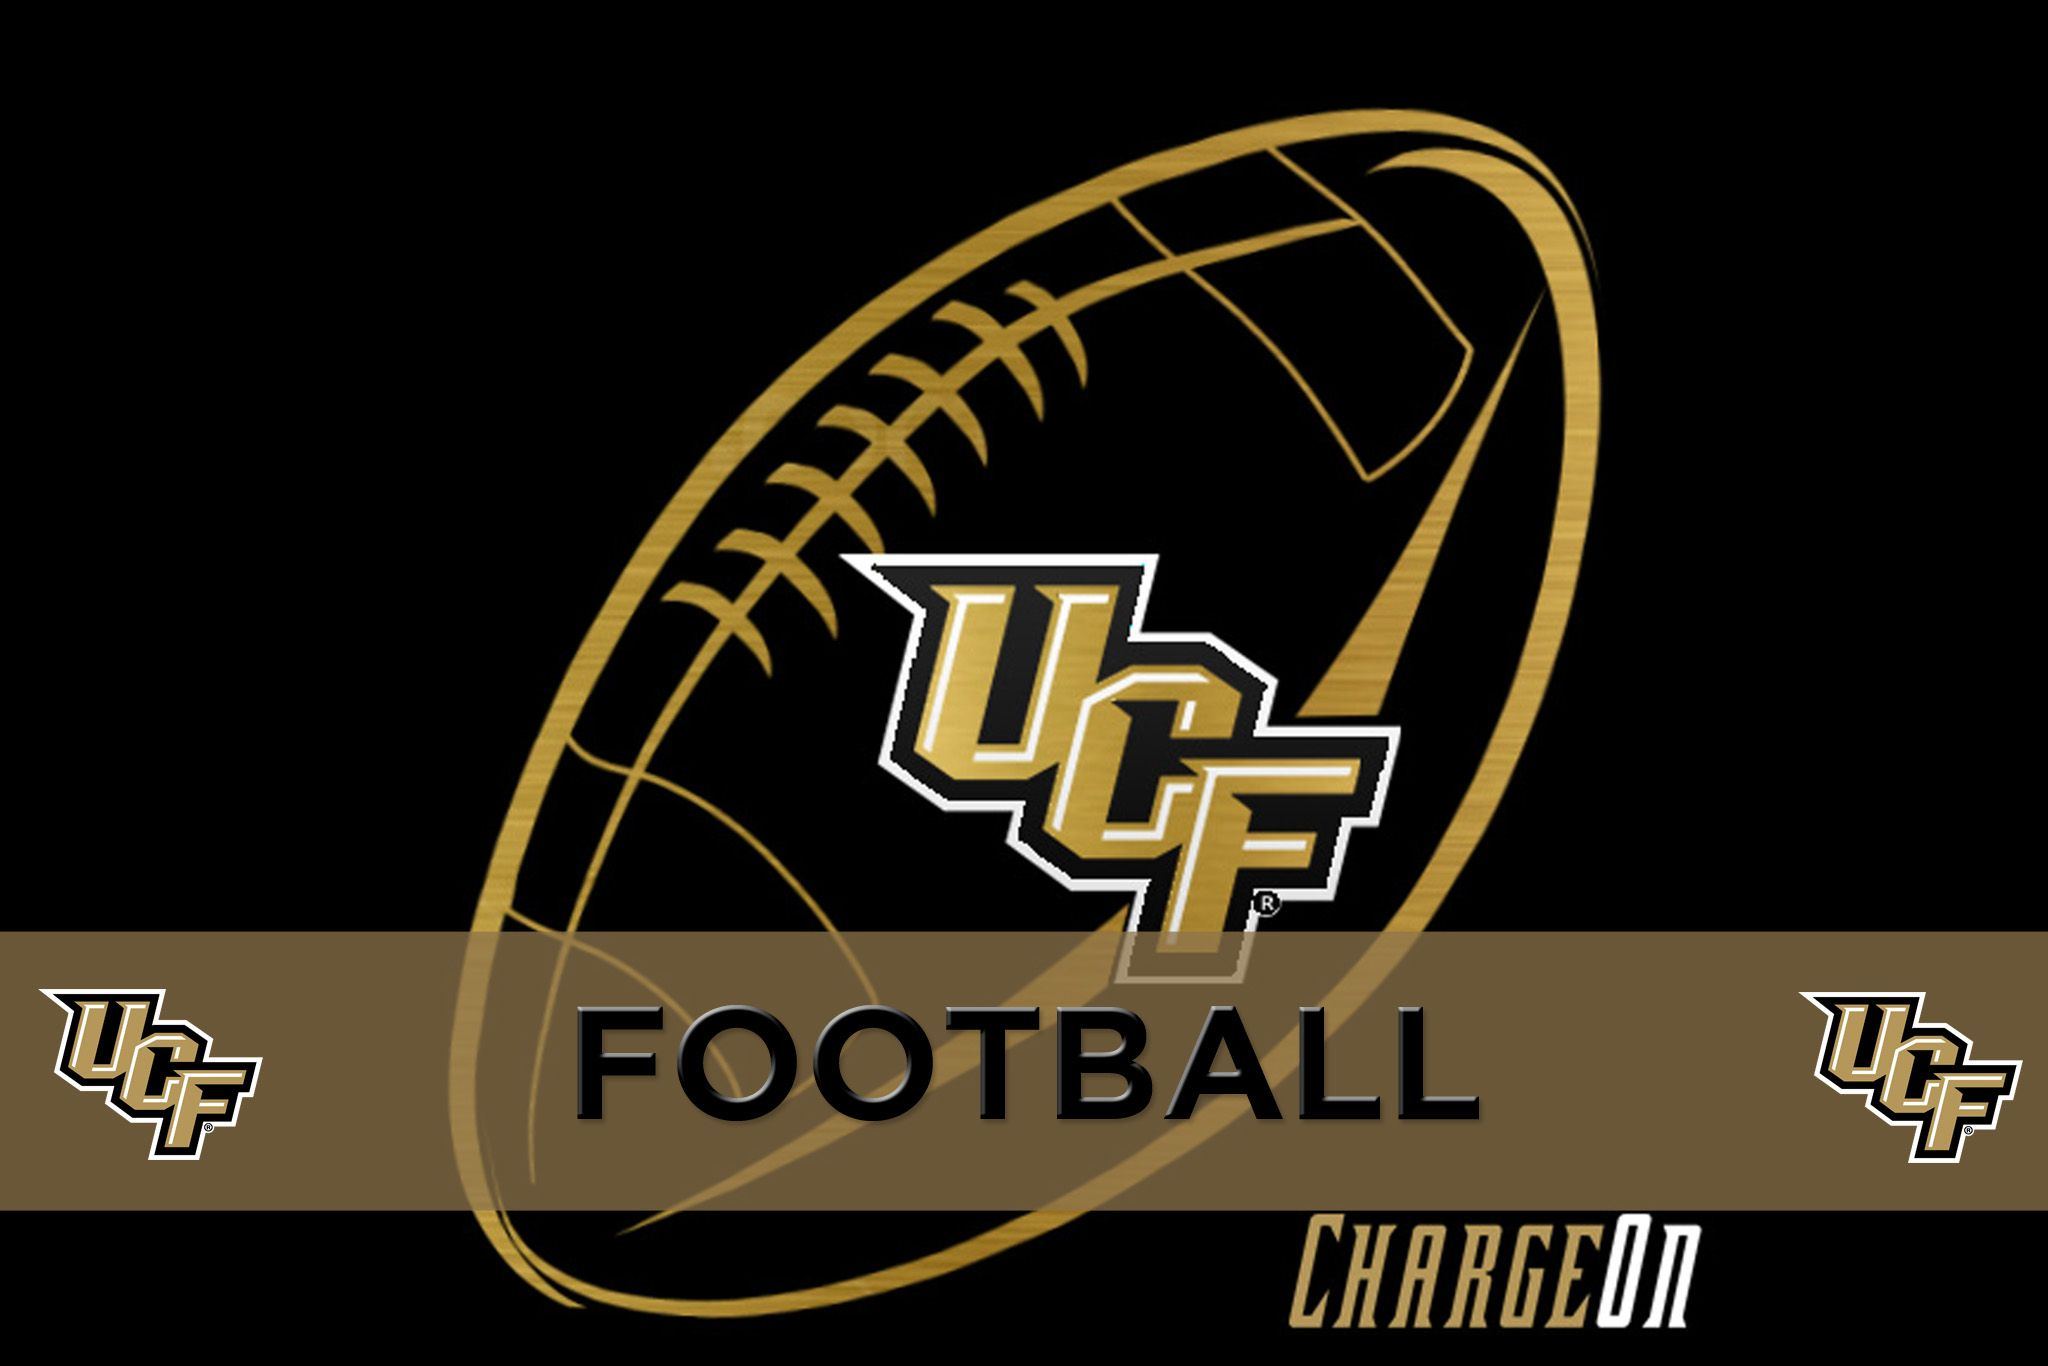 All about our football team | UCF Knight - Black & Gold ...